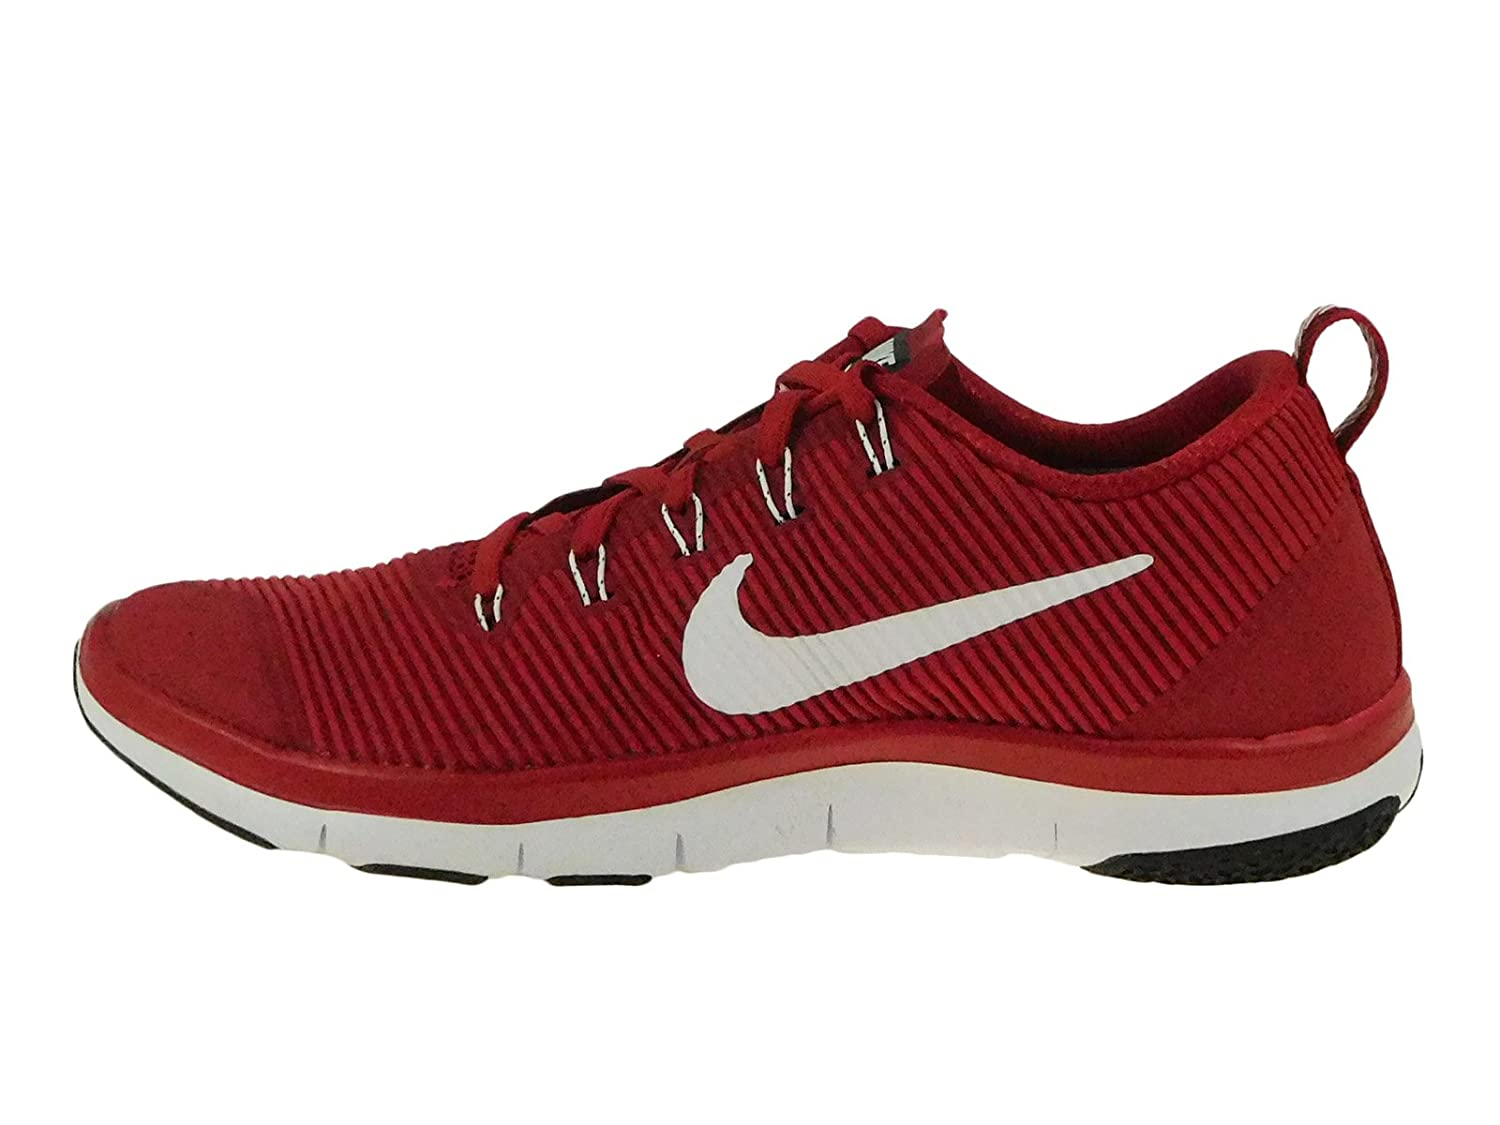 NIKE Men's Free Train Versatility Running US|Gym Shoes B072M8M2SF 8.5 D(M) US|Gym Running Red/White/Black d59f02